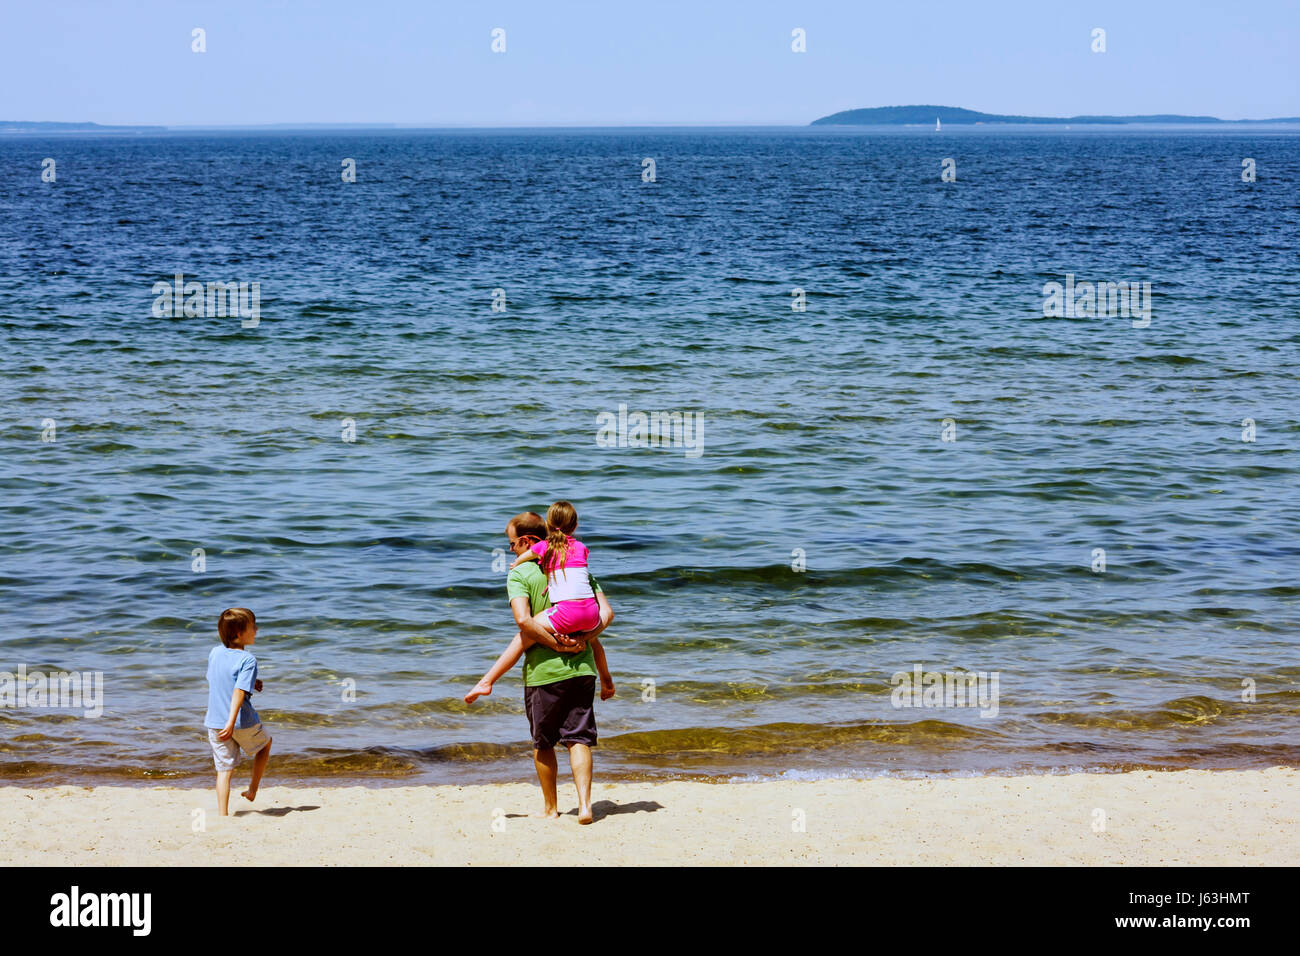 Michigan Traverse City West Arm Grand Traverse Bay Clinch Park man boy girl parent child water beach piggyback play - Stock Image